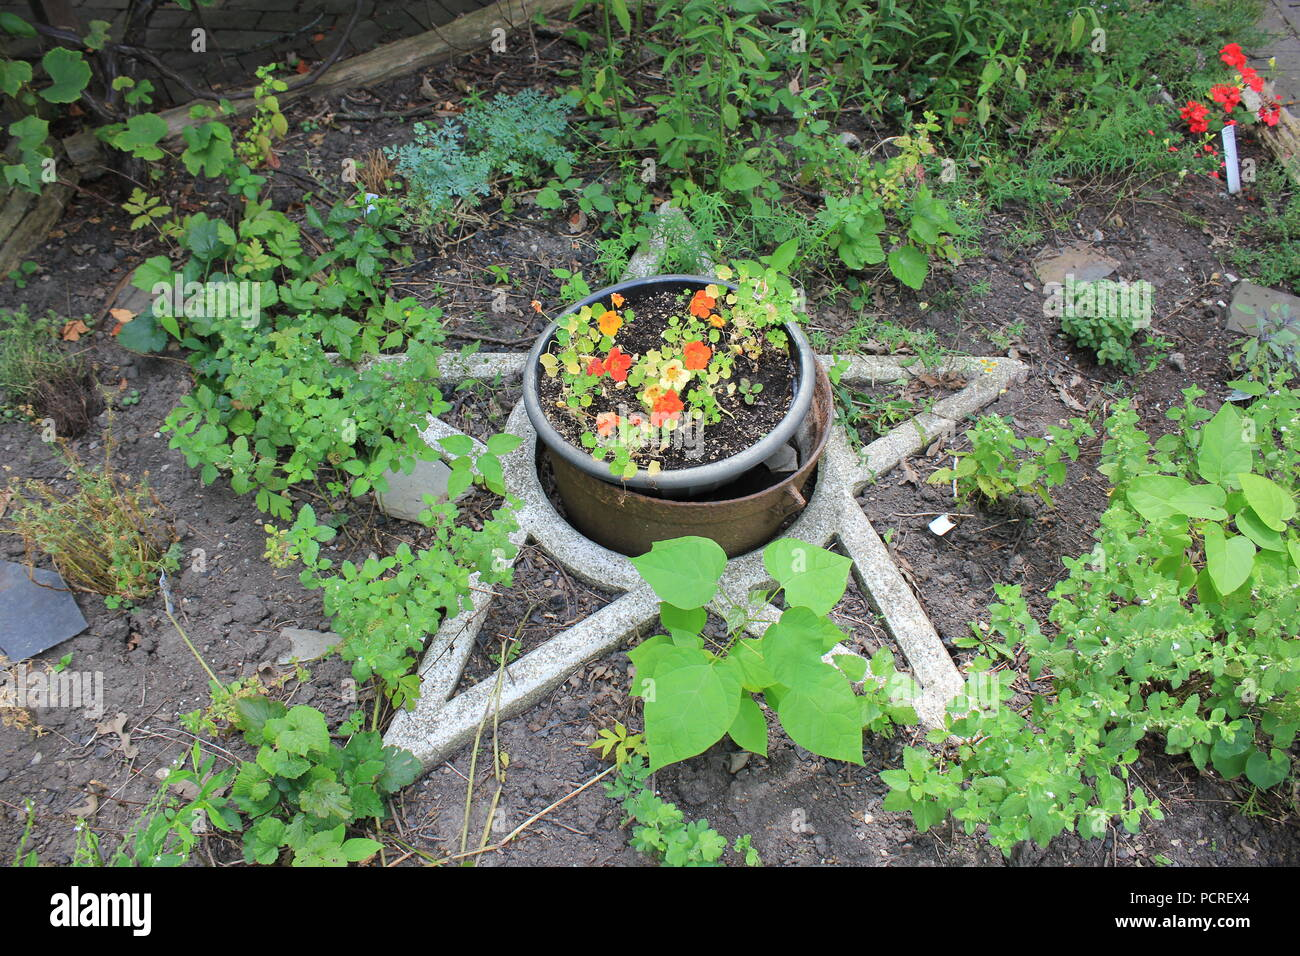 Pentagram polygon as a garden decoration at the Kennicott Grove in suburban Glenview, Illinois on a summer day. - Stock Image